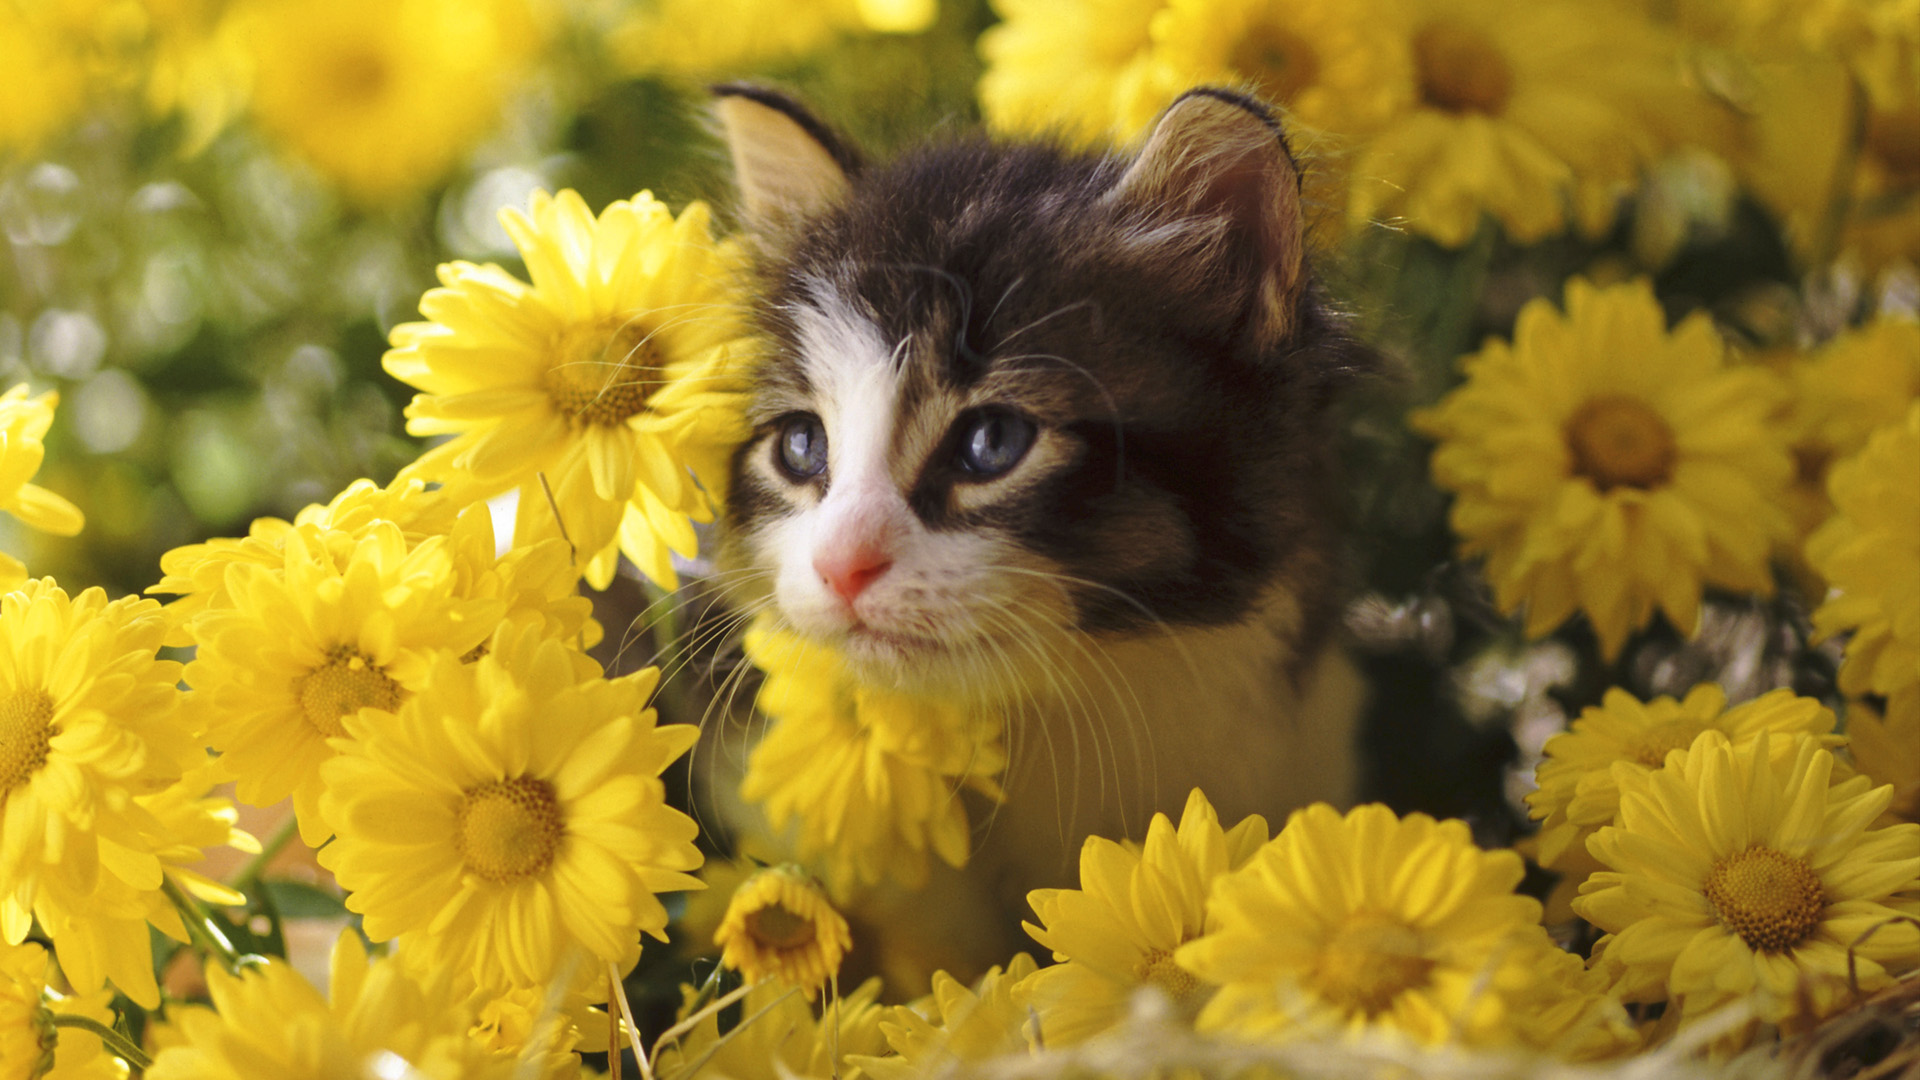 Cat wallpapers hd 1920x1080 wallpapersafari - Kitten wallpaper hd ...